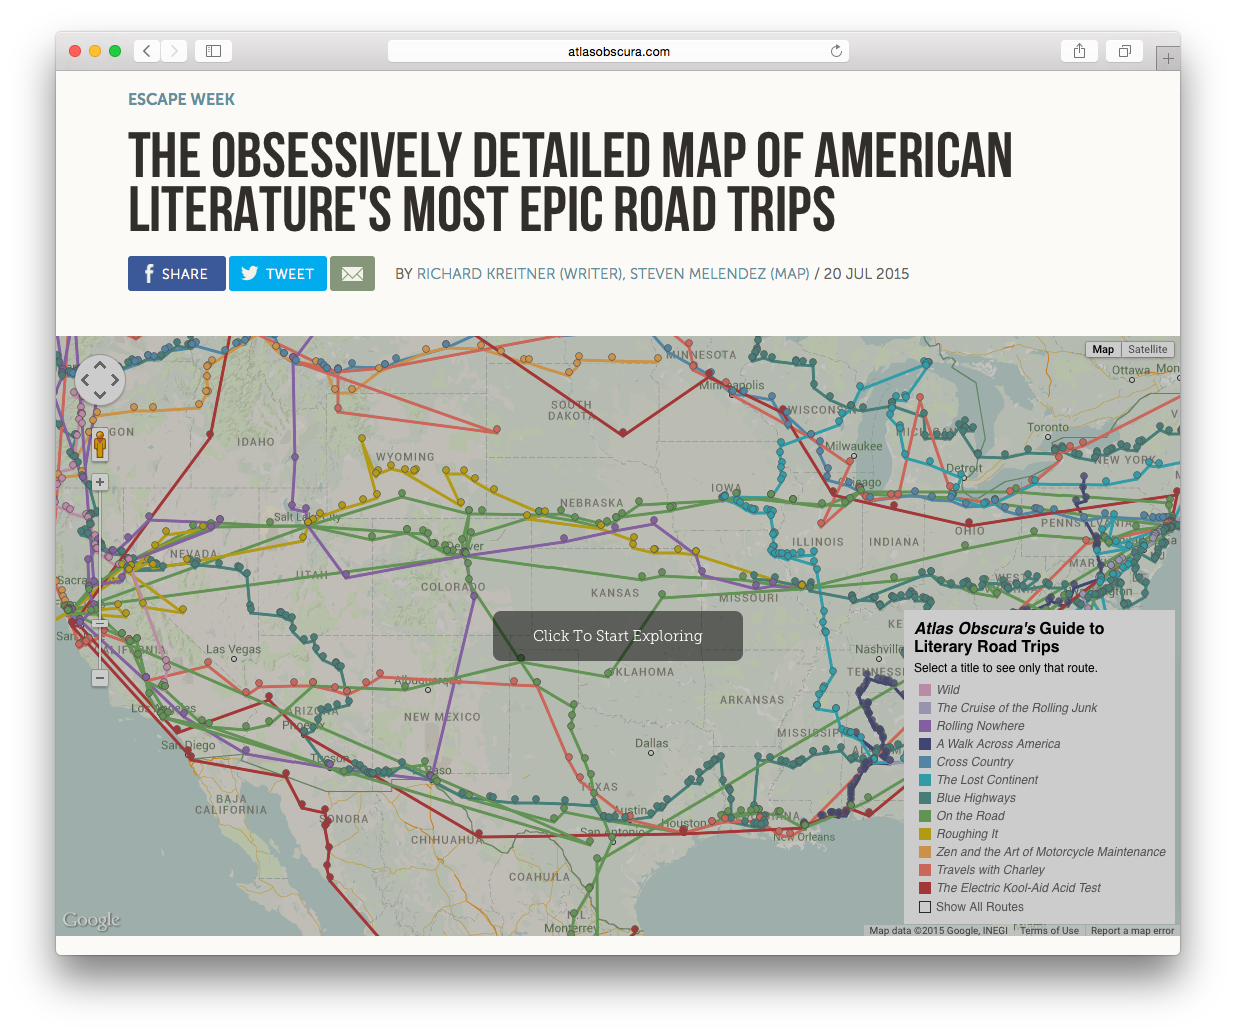 Atlas Obscura road trip map